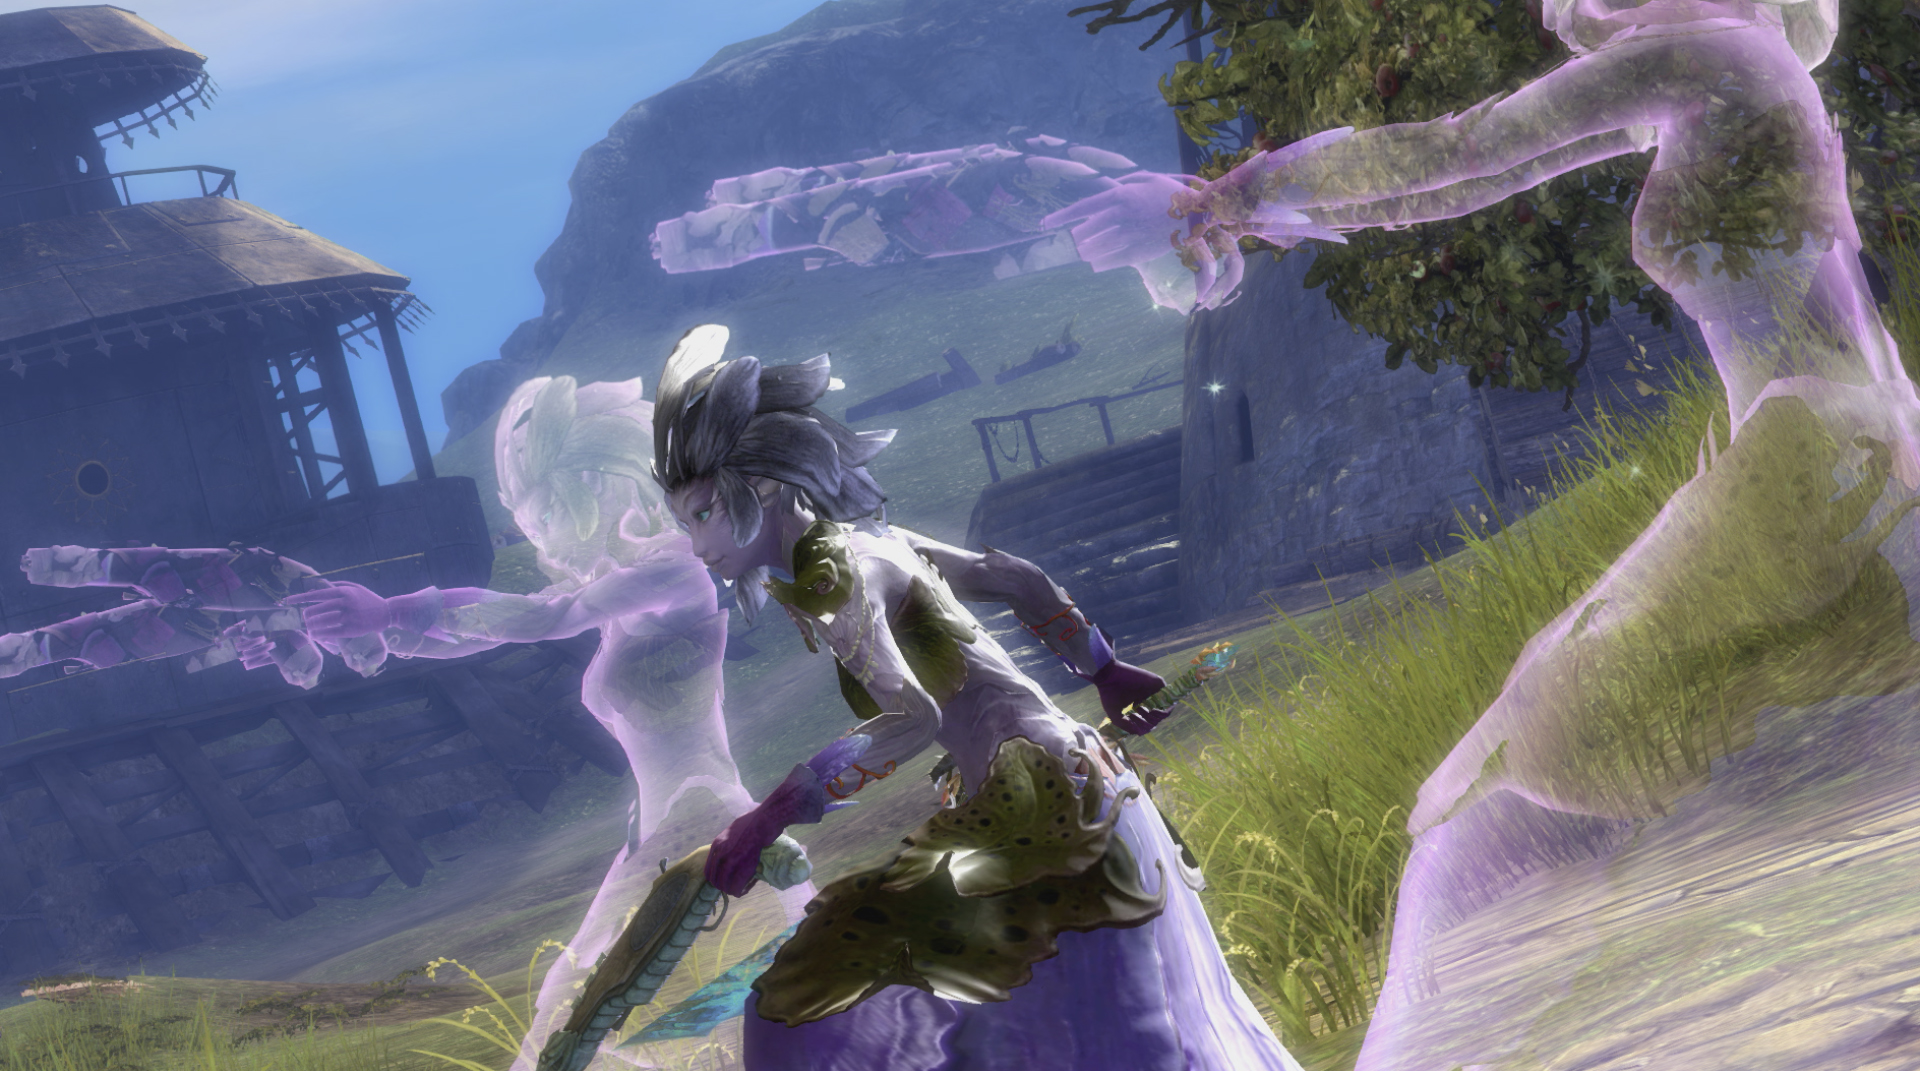 https://i0.wp.com/wiki.guildwars2.com/images/d/dd/Mesmer_with_phantasms.jpg